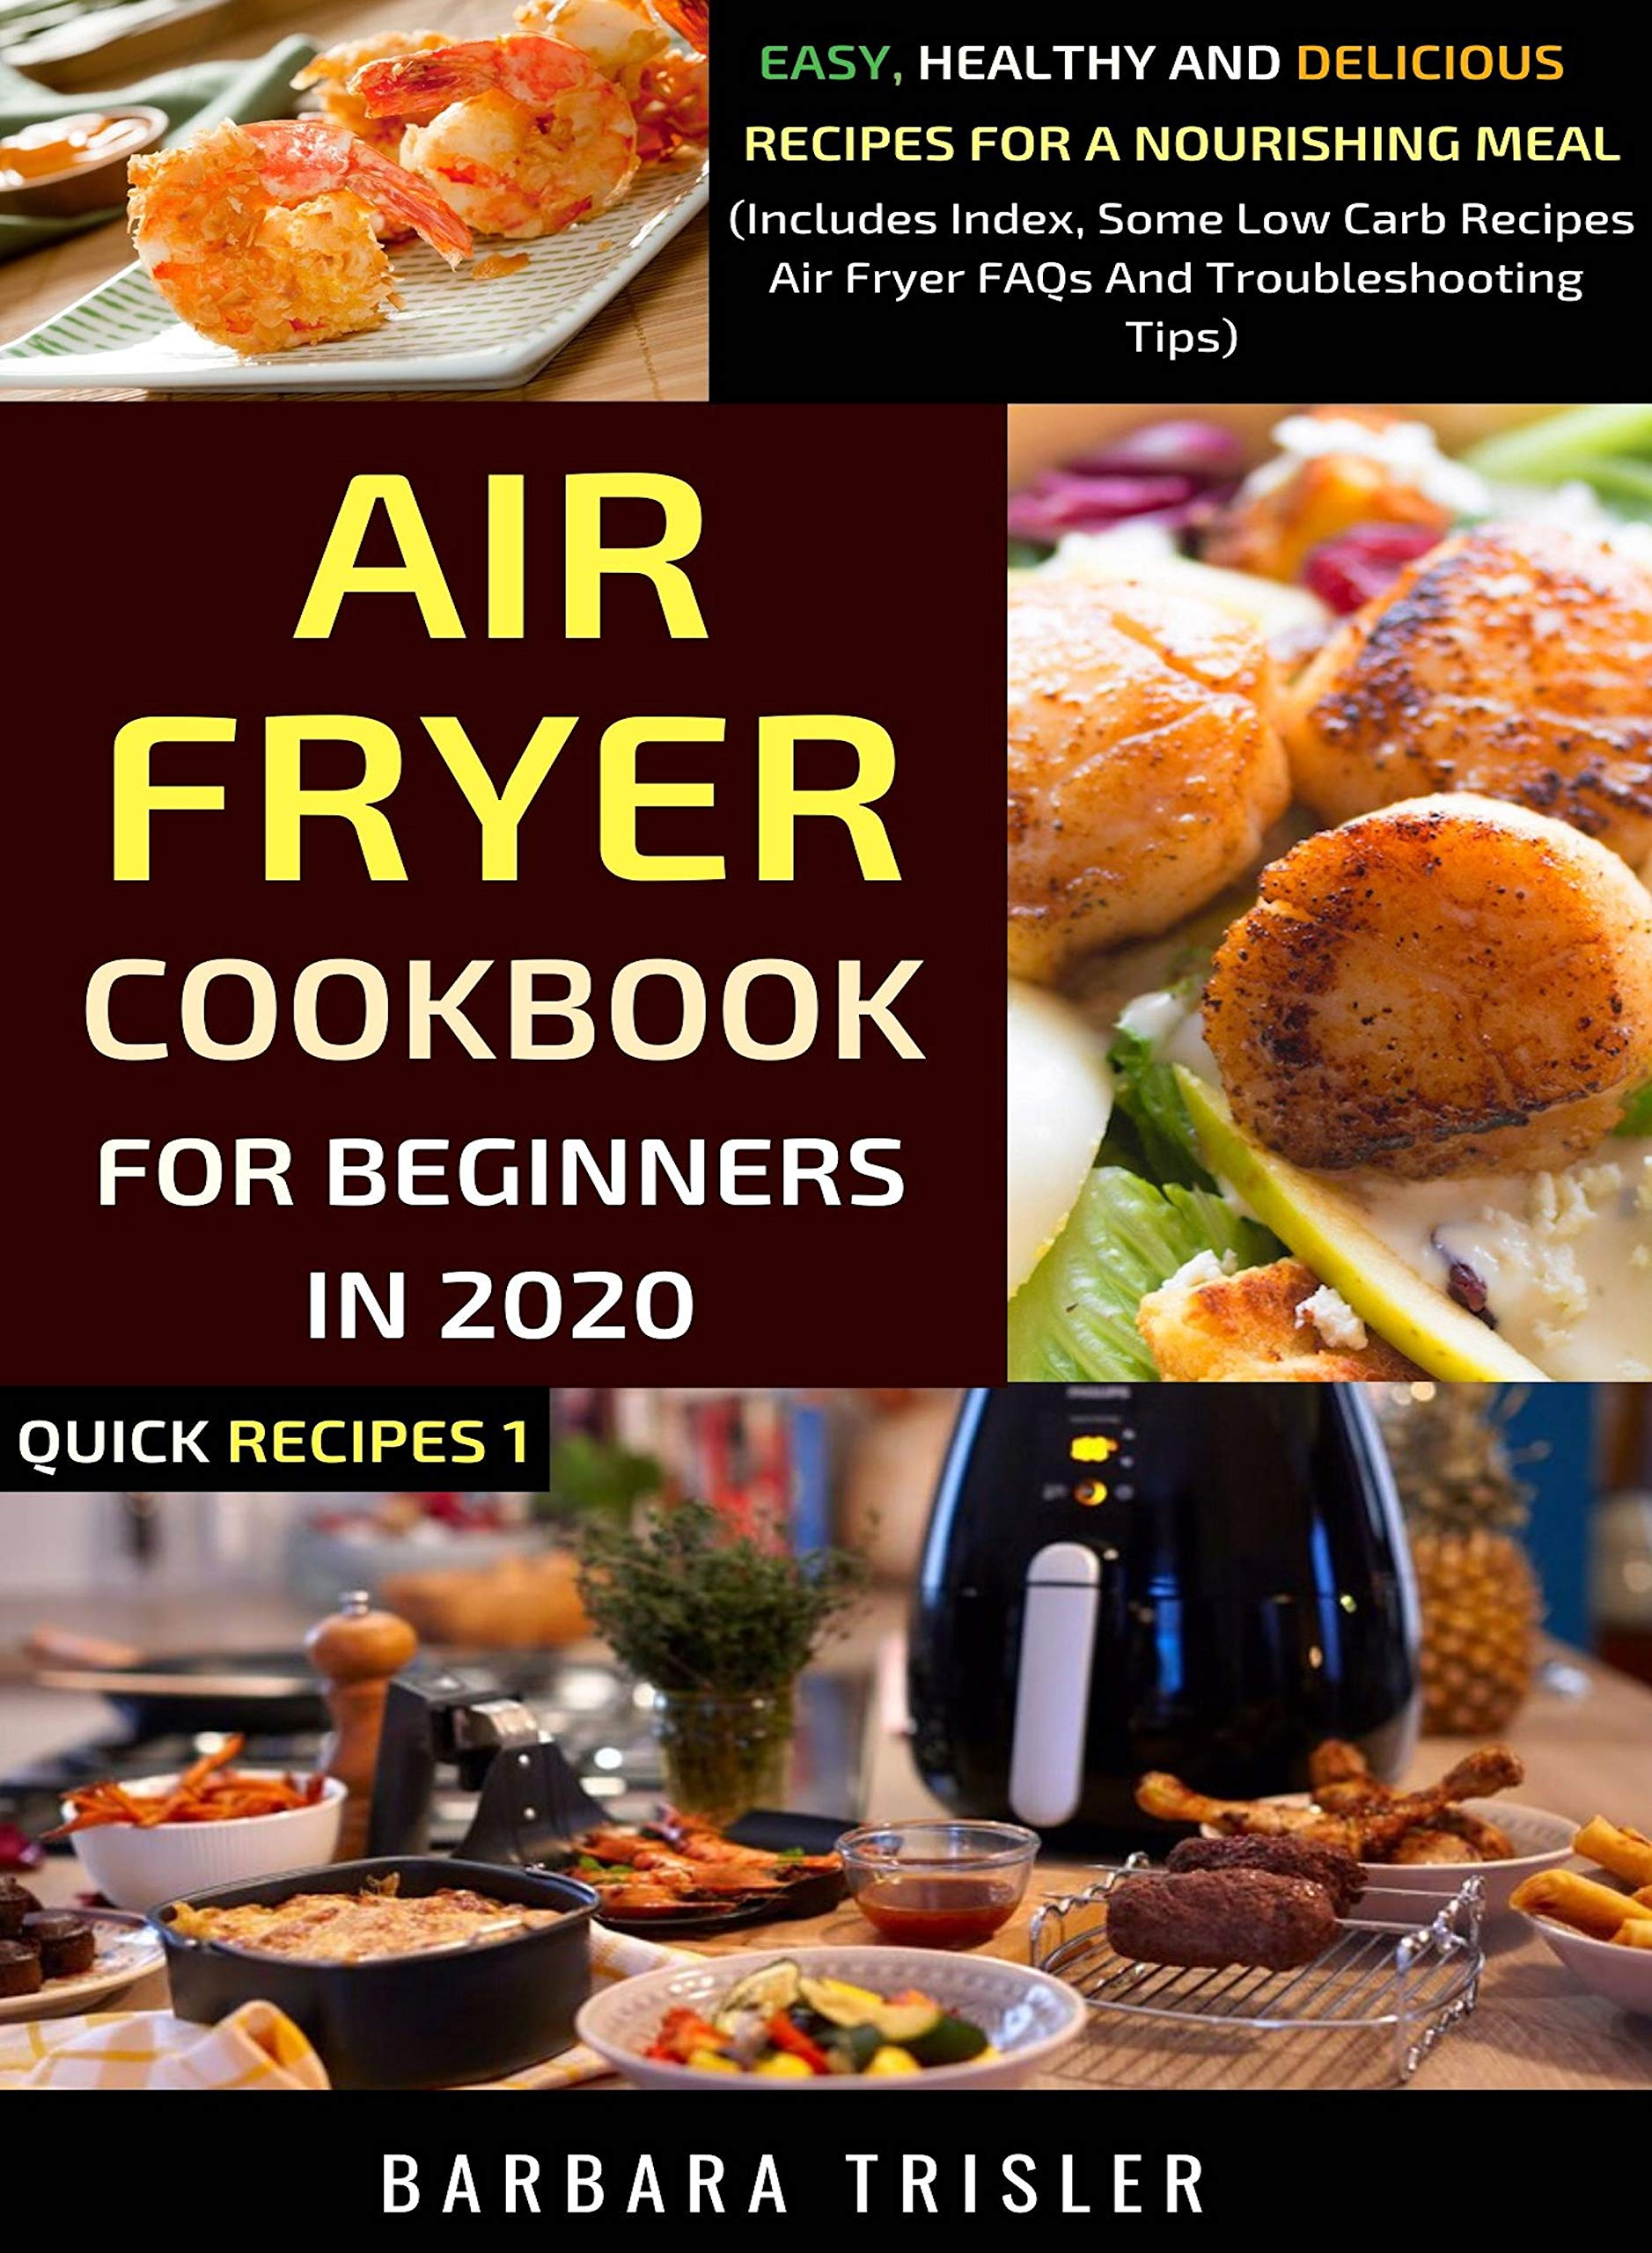 Air Fryer Cookbook For Beginners In 2020: Easy, Healthy And Delicious Recipes For A Nourishing Meal (Includes Index, Some Low Carb Recipes, Air Fryer FAQs And Troubleshooting Tips)